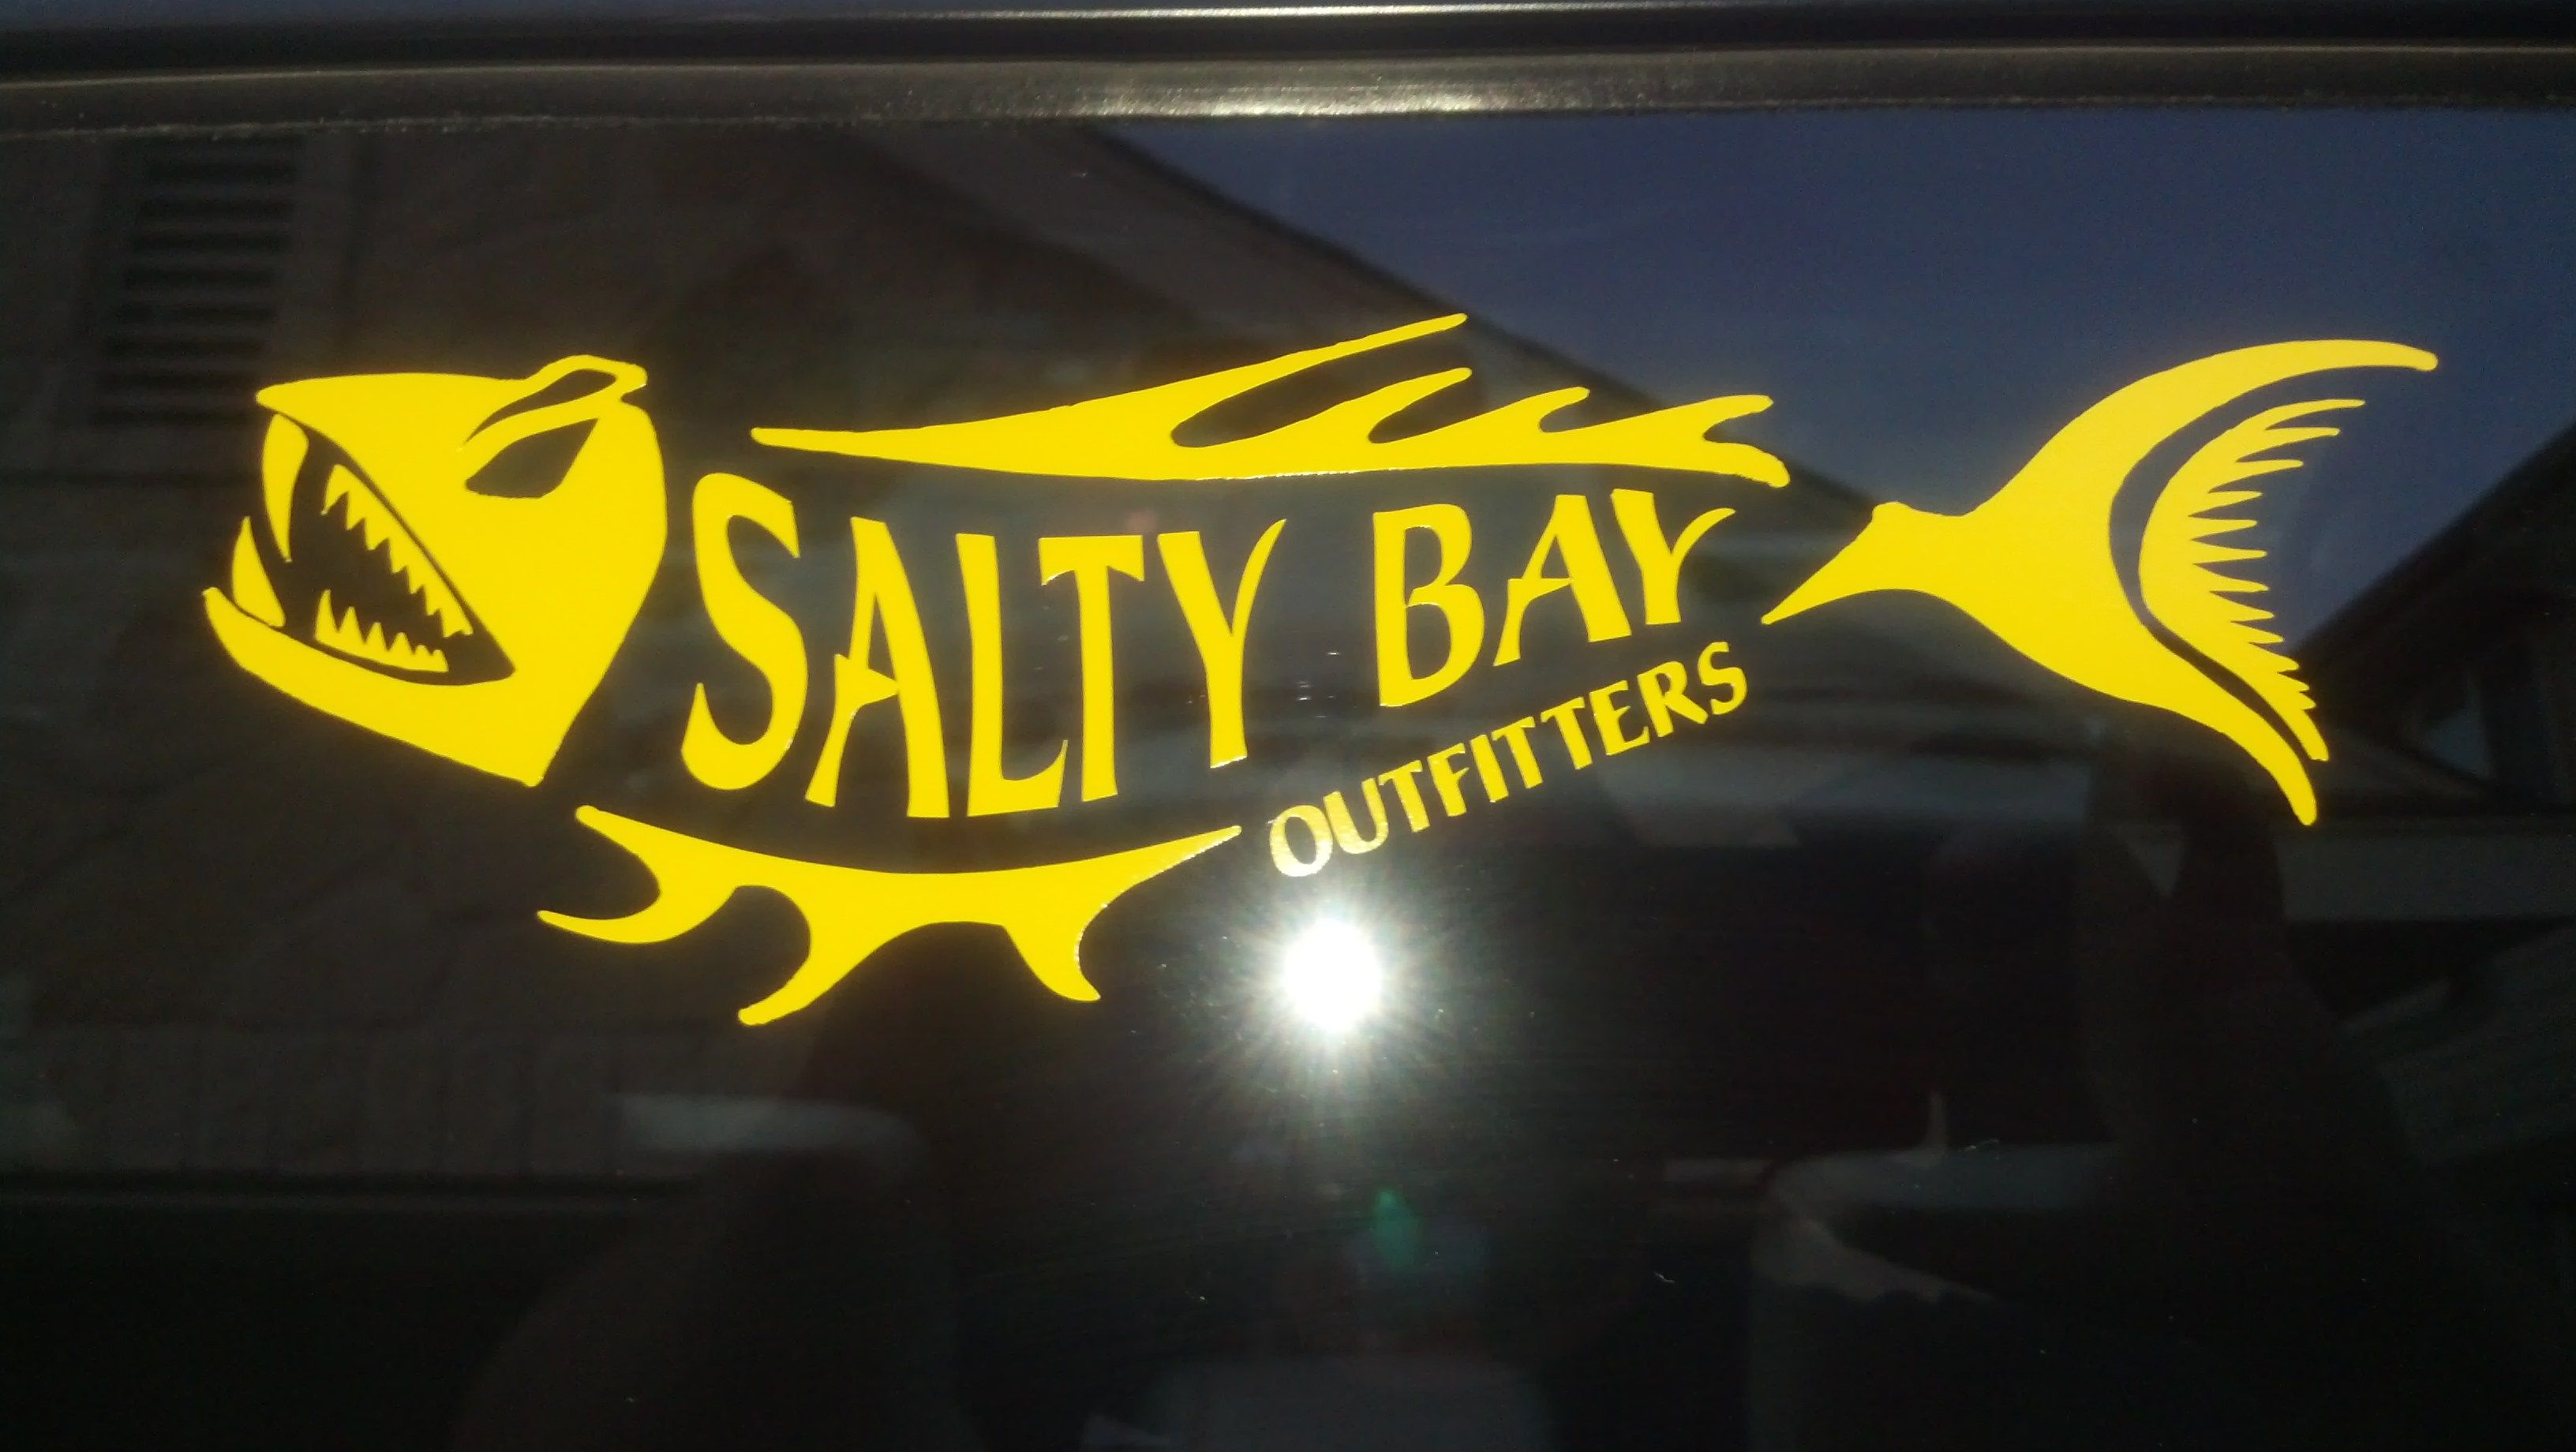 for more information visit saltybayoutfitters.com